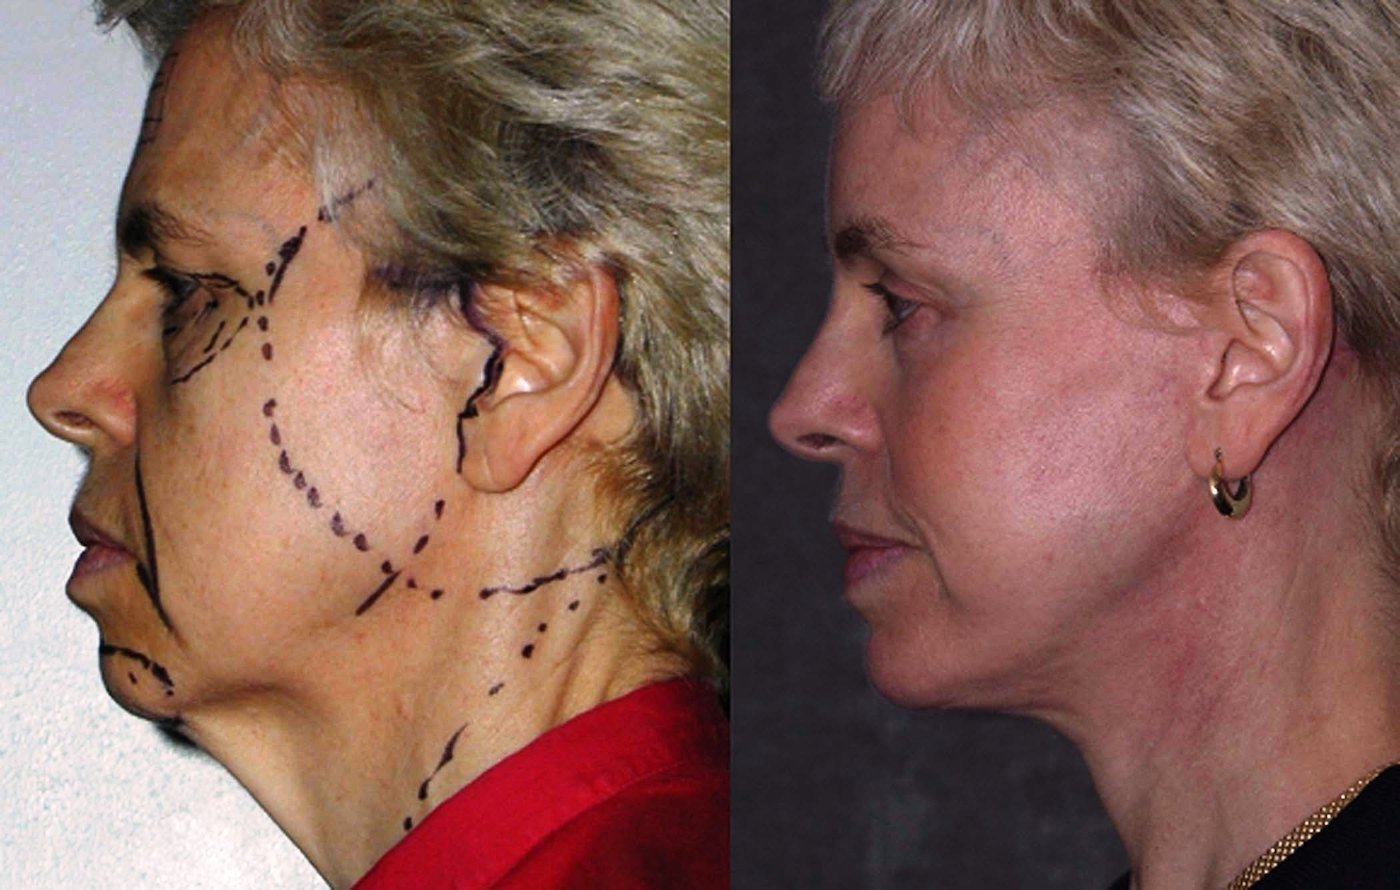 56-year-old, facelift, submental platysmaplasty, endobrow, upper lower eyelids, chin augmentation, 2 years after surgery, side view